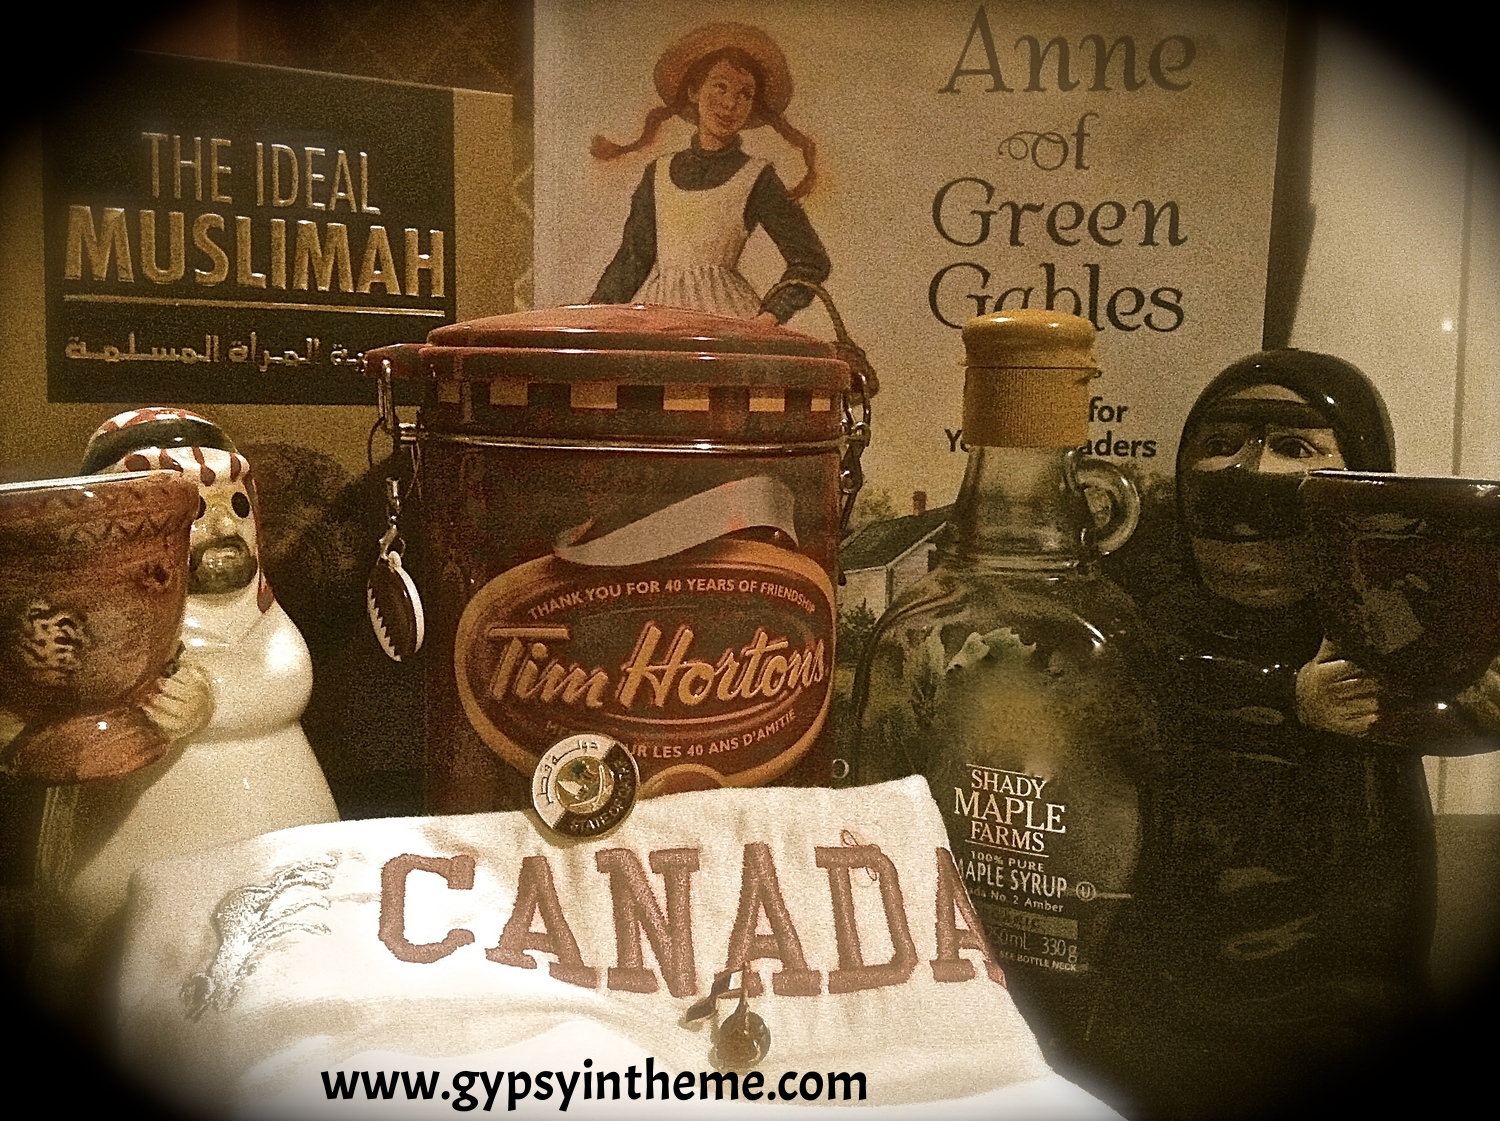 Trying to depict some of the many contrasts of being a Canadian woman working in the Middle East ... savoury and sweet, black and white, the iconic Canadian little rebel (Anne of Green Gables) and the Ideal Muslimah.